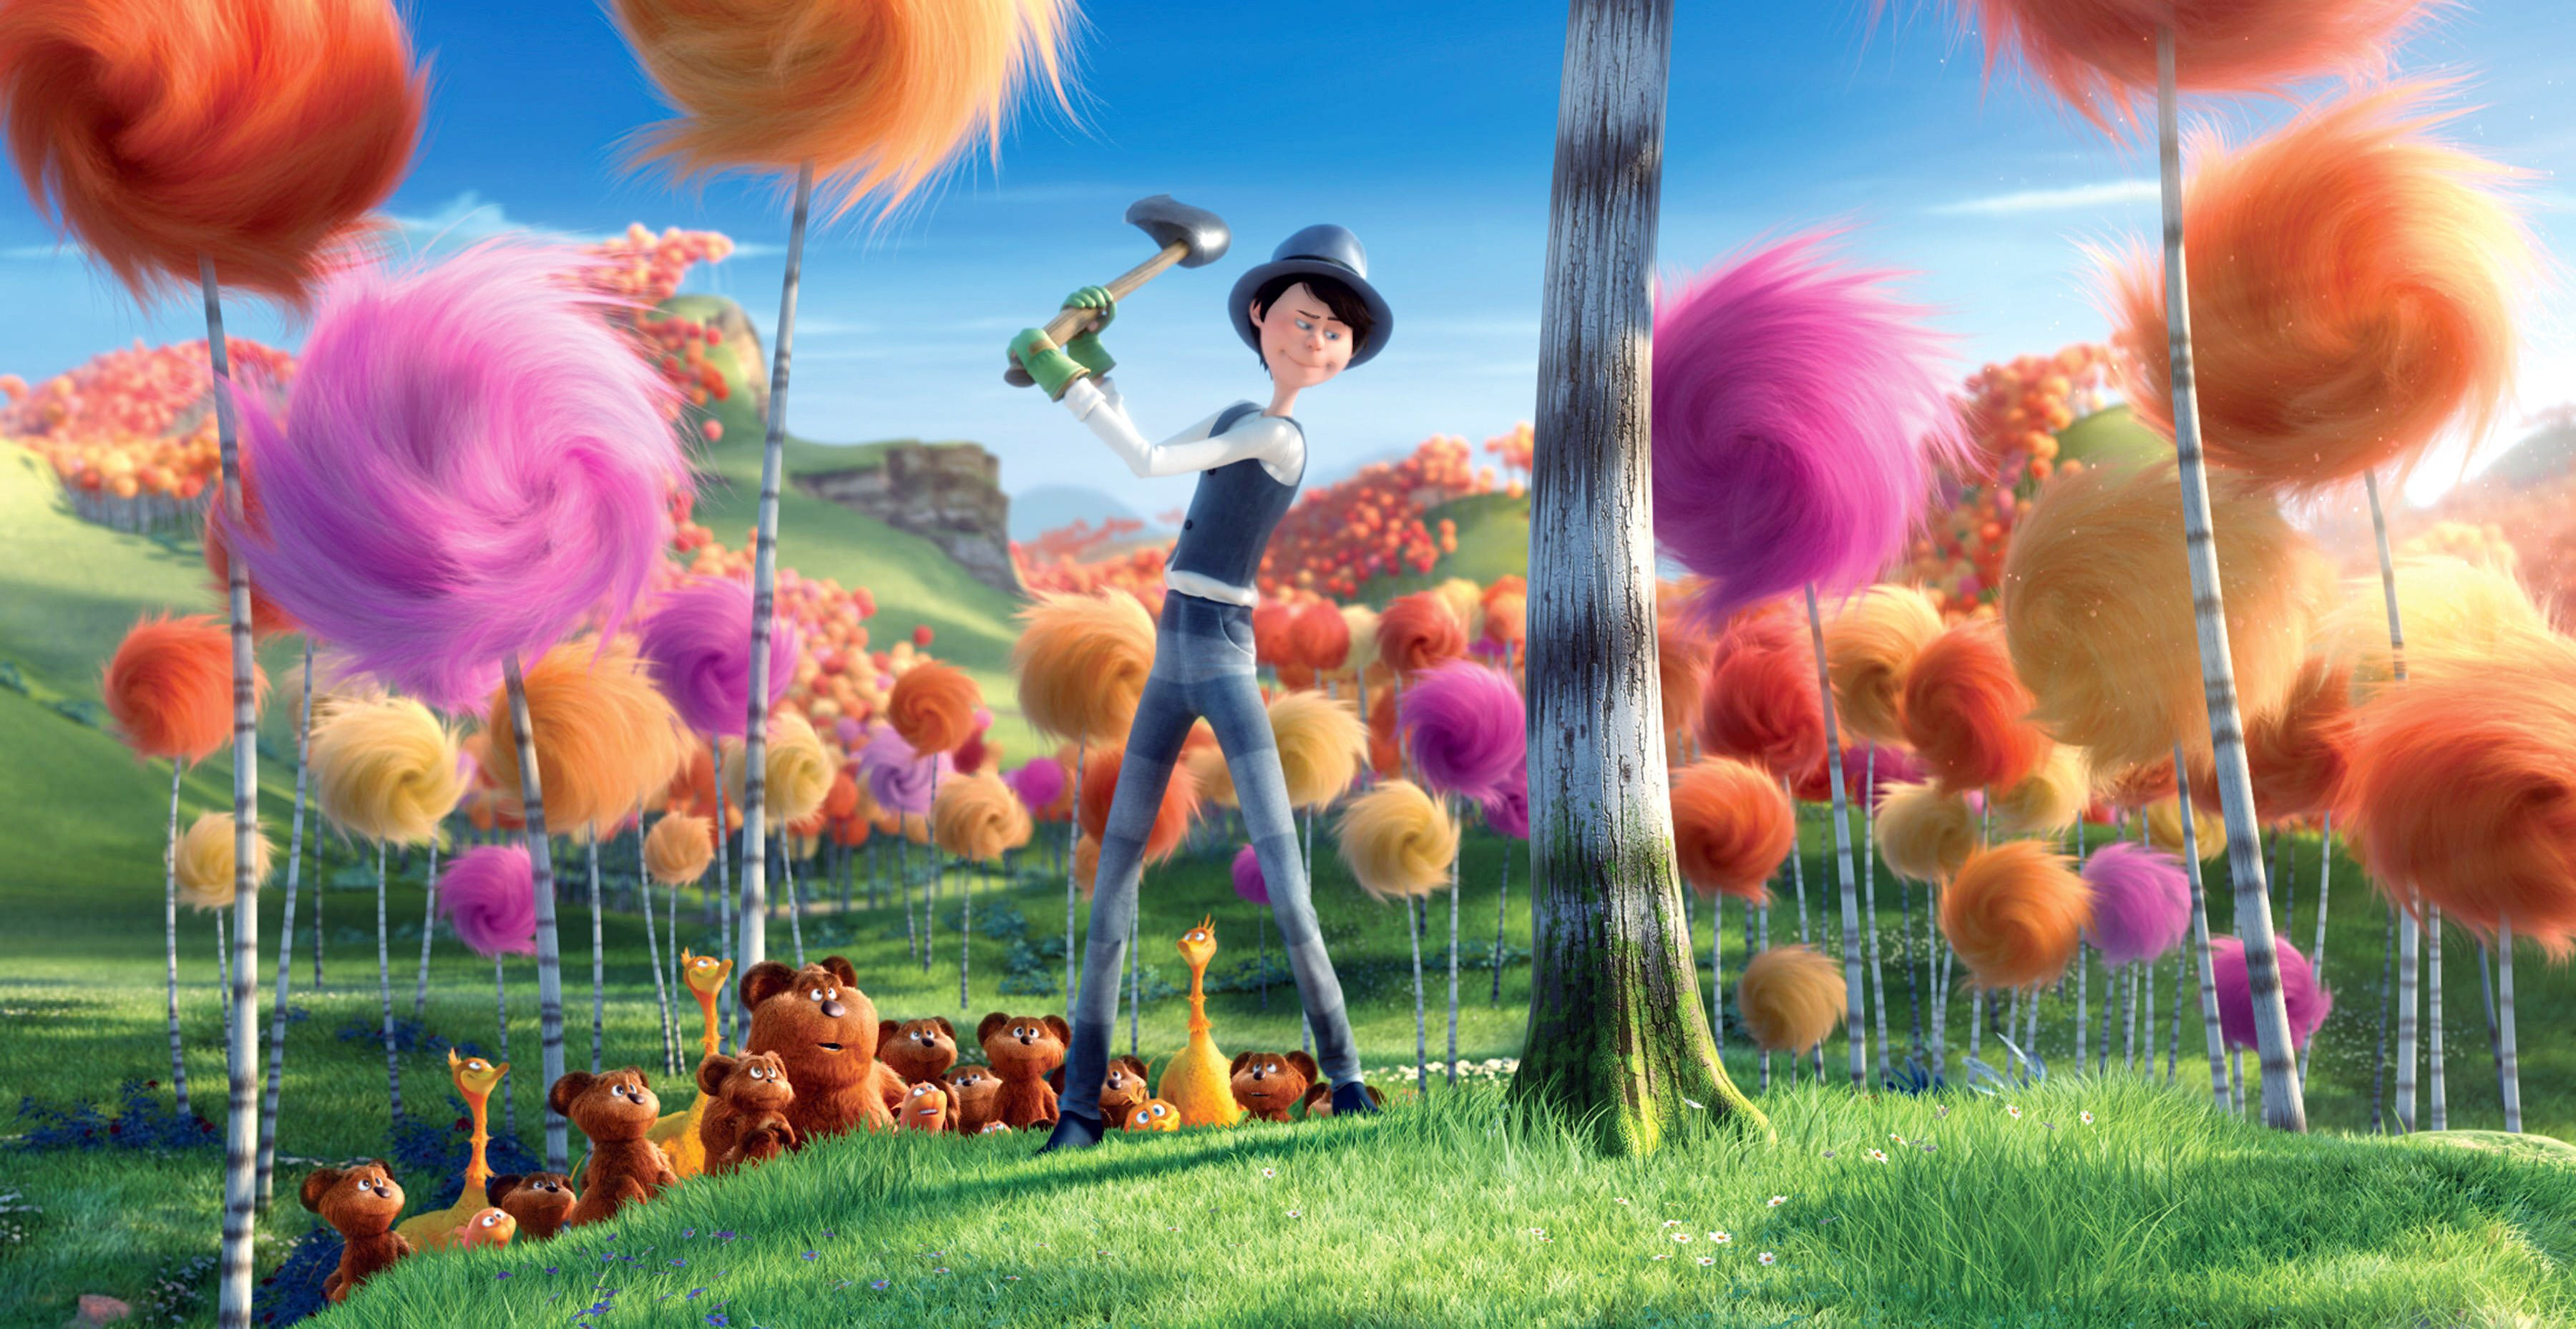 Movie Review The Lorax Cuddly Cartoon Agitprop The Unabomber